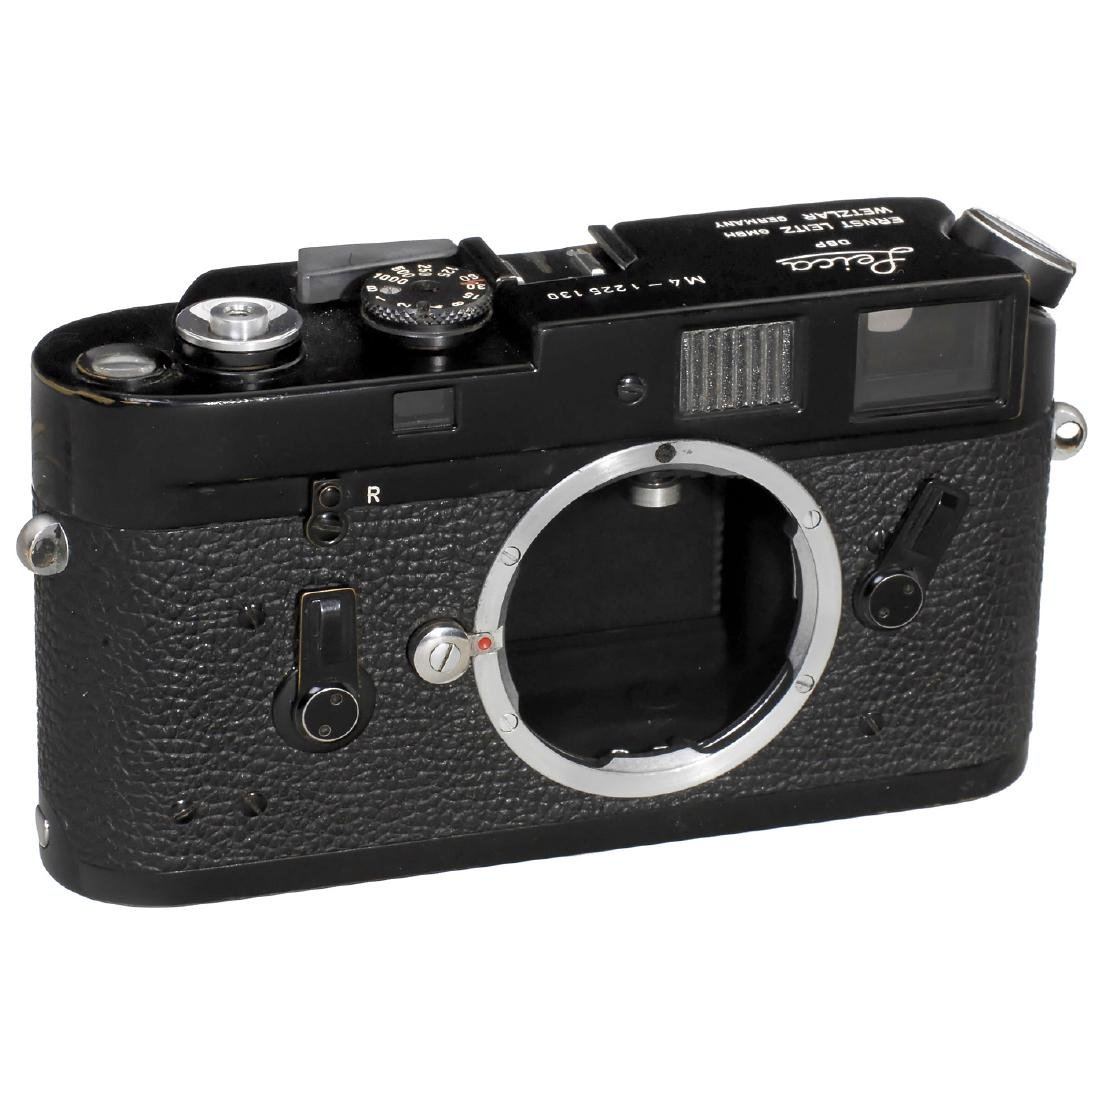 Leica M4 Body (Black Paint), 1969